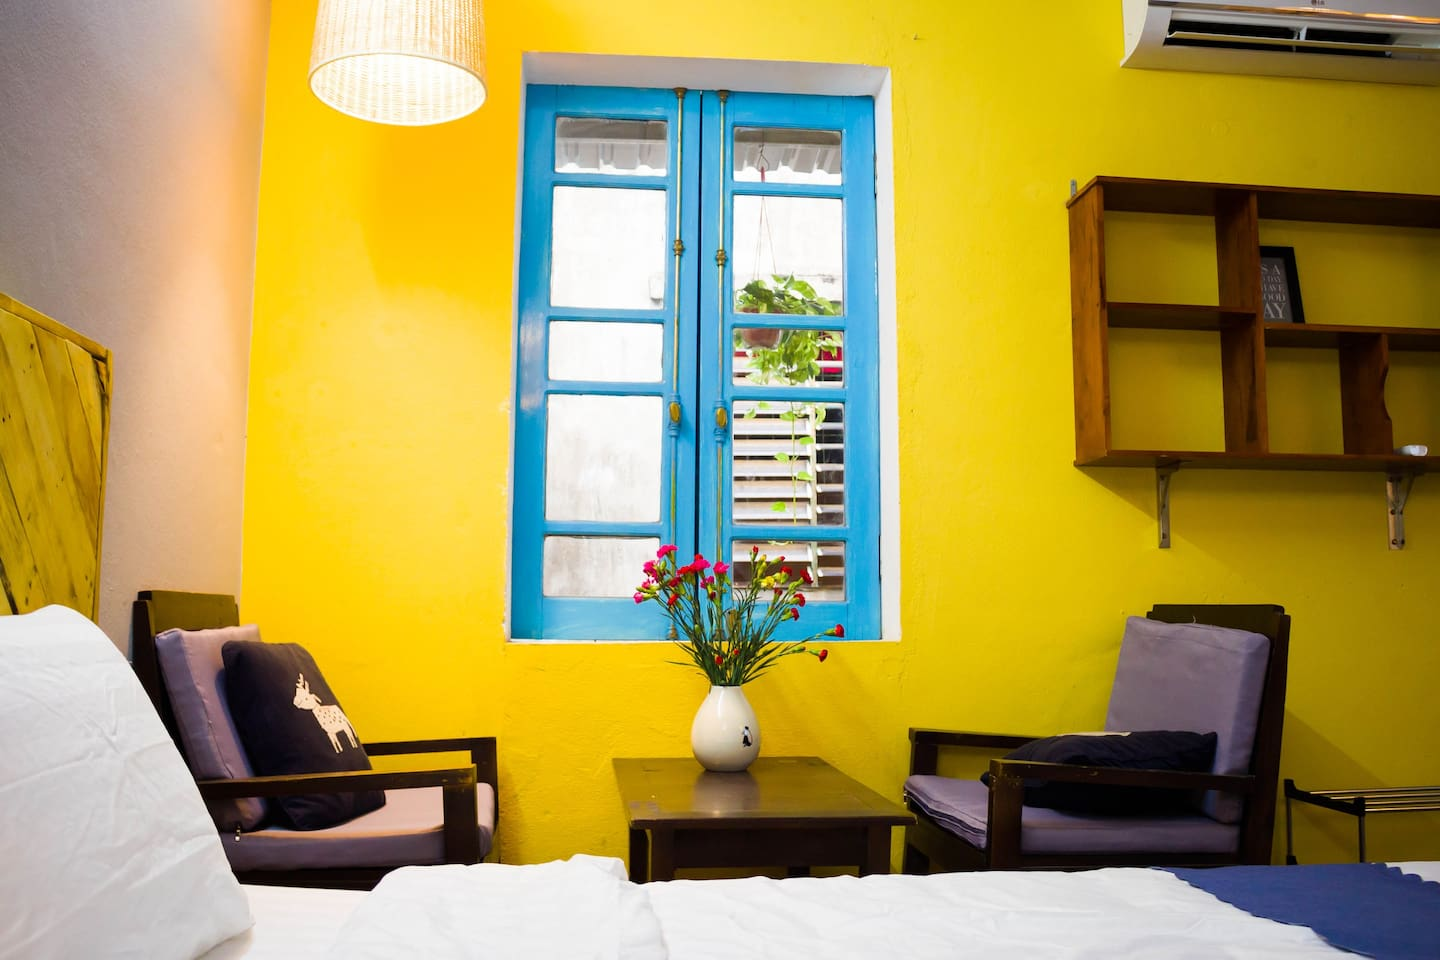 A cozy and friendly space for family with fully equipment, brings a convenient but more interest vacation.